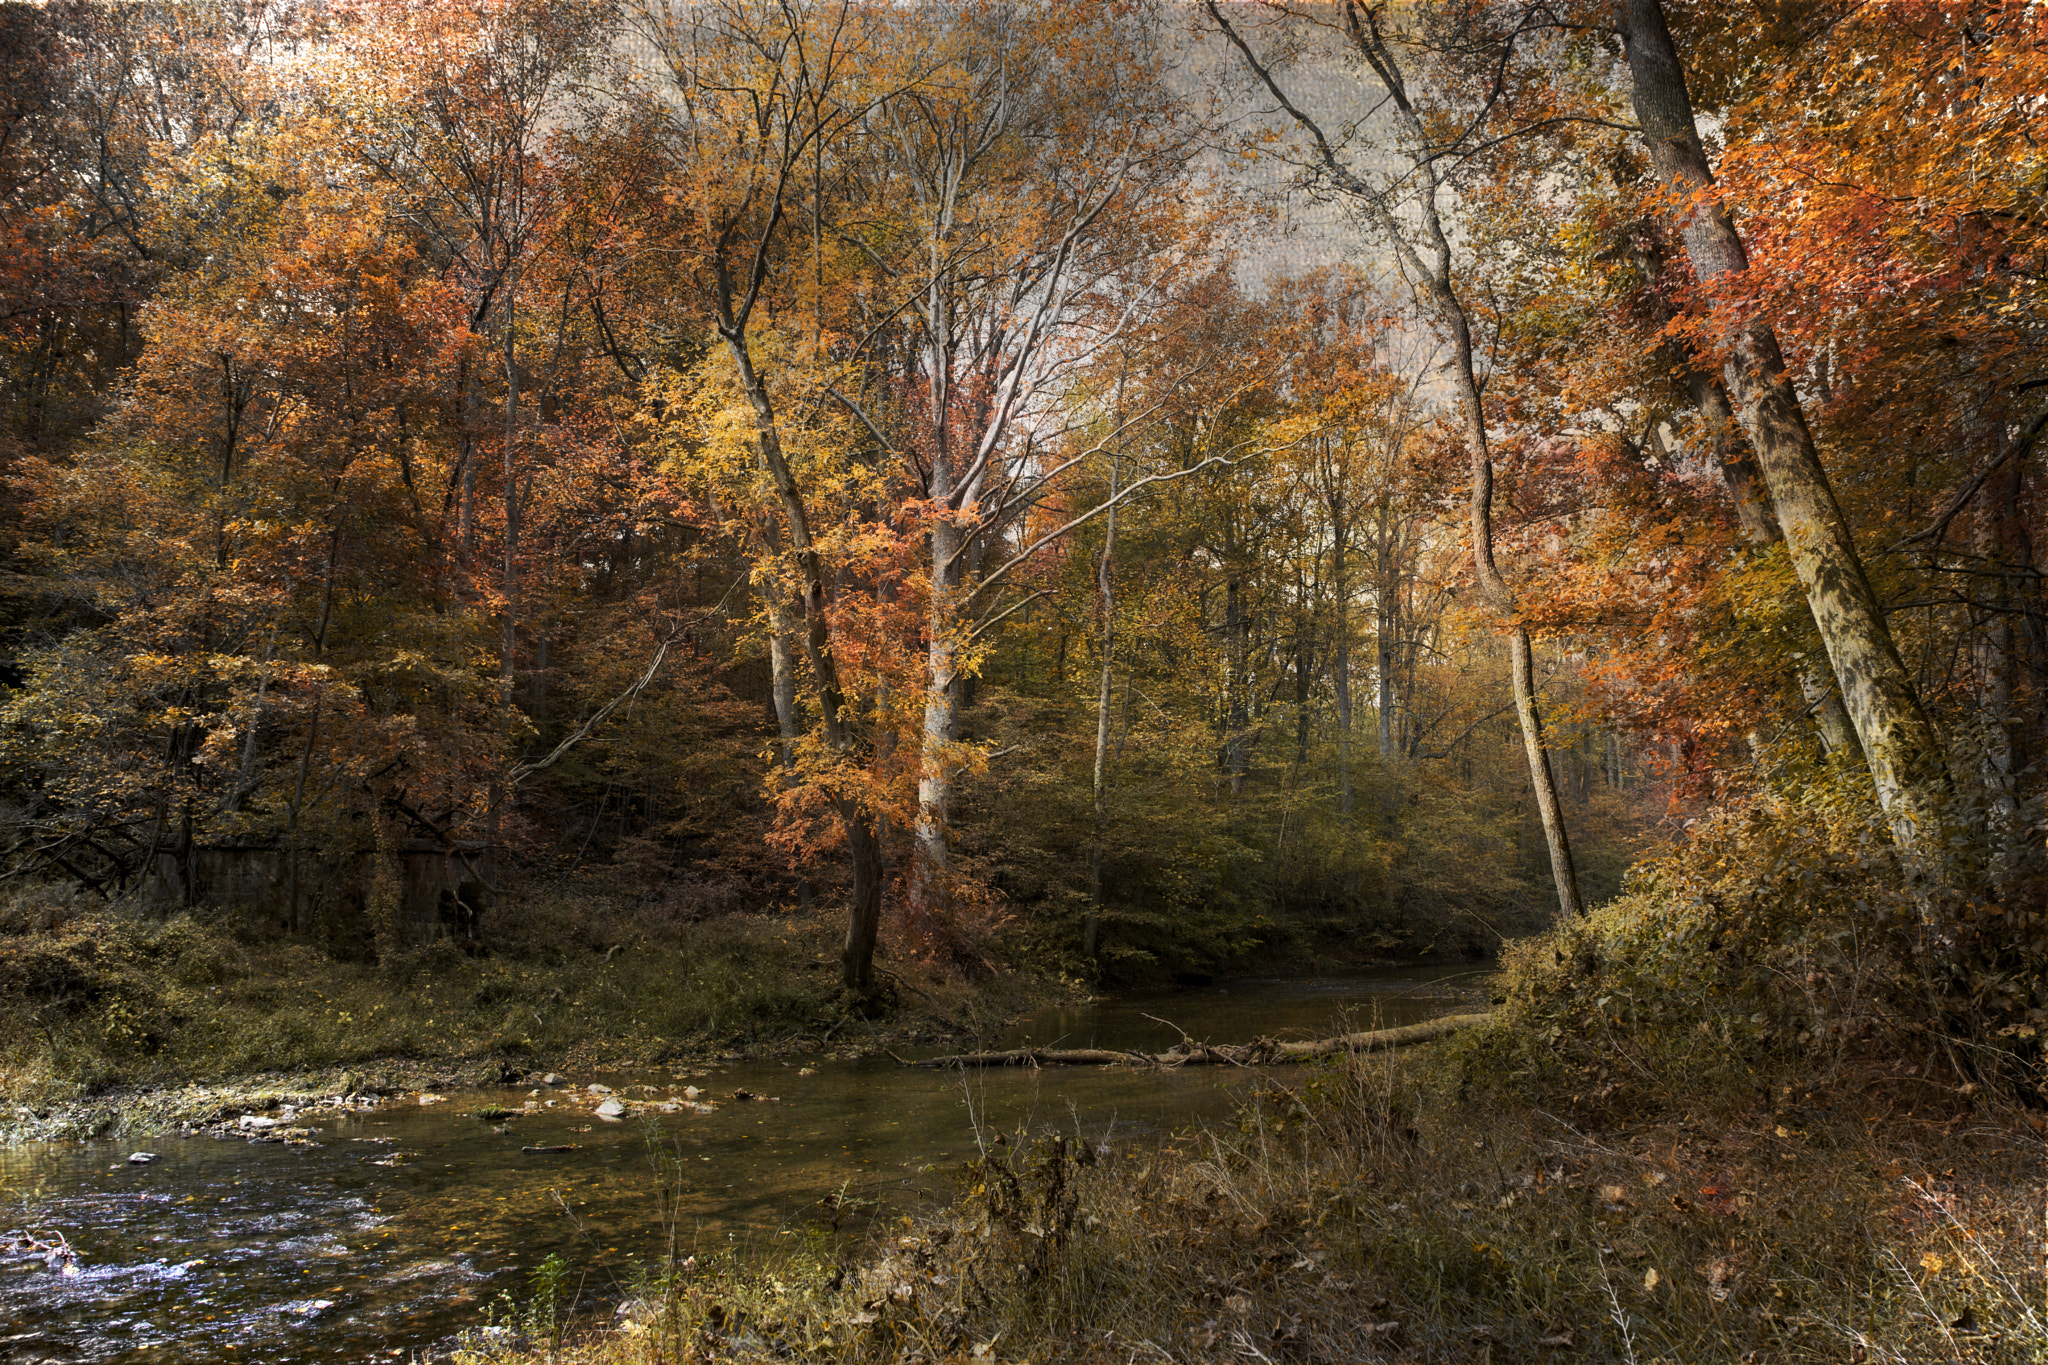 Photograph October Afternoon by John Rivera on 500px